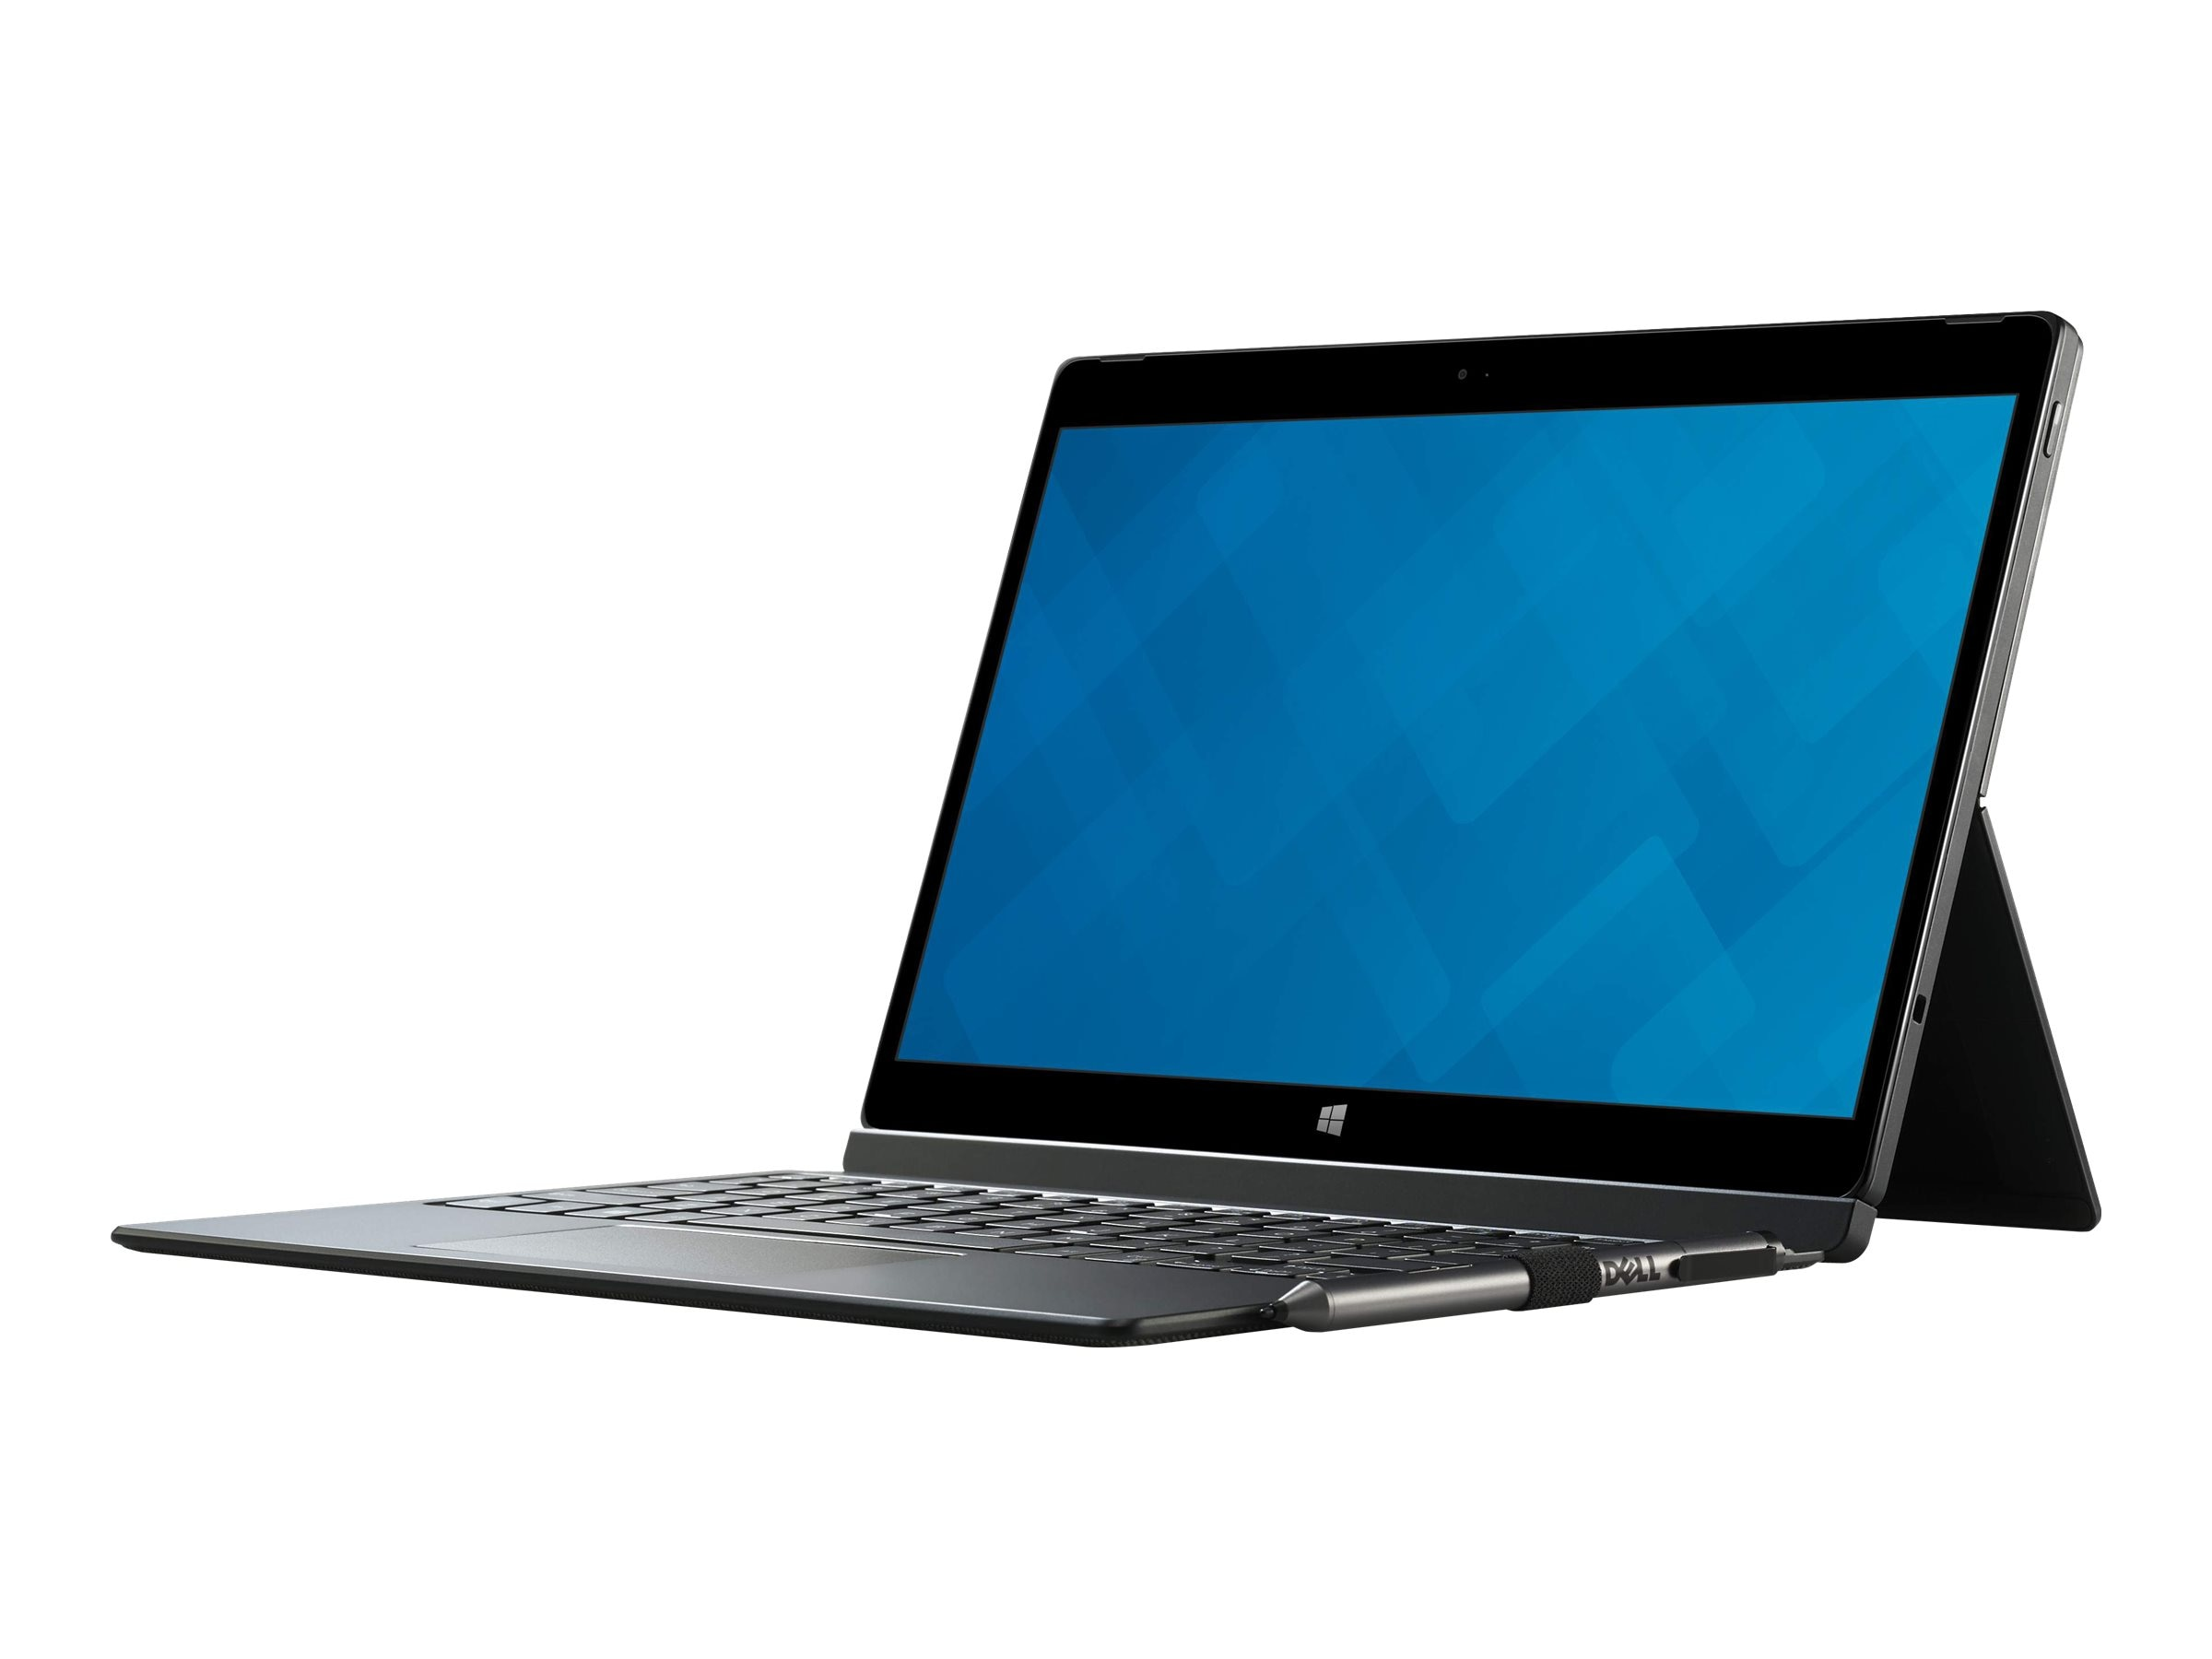 Dell Latitude 7275 1.1GHz Core m5 12.5in display, 59C32